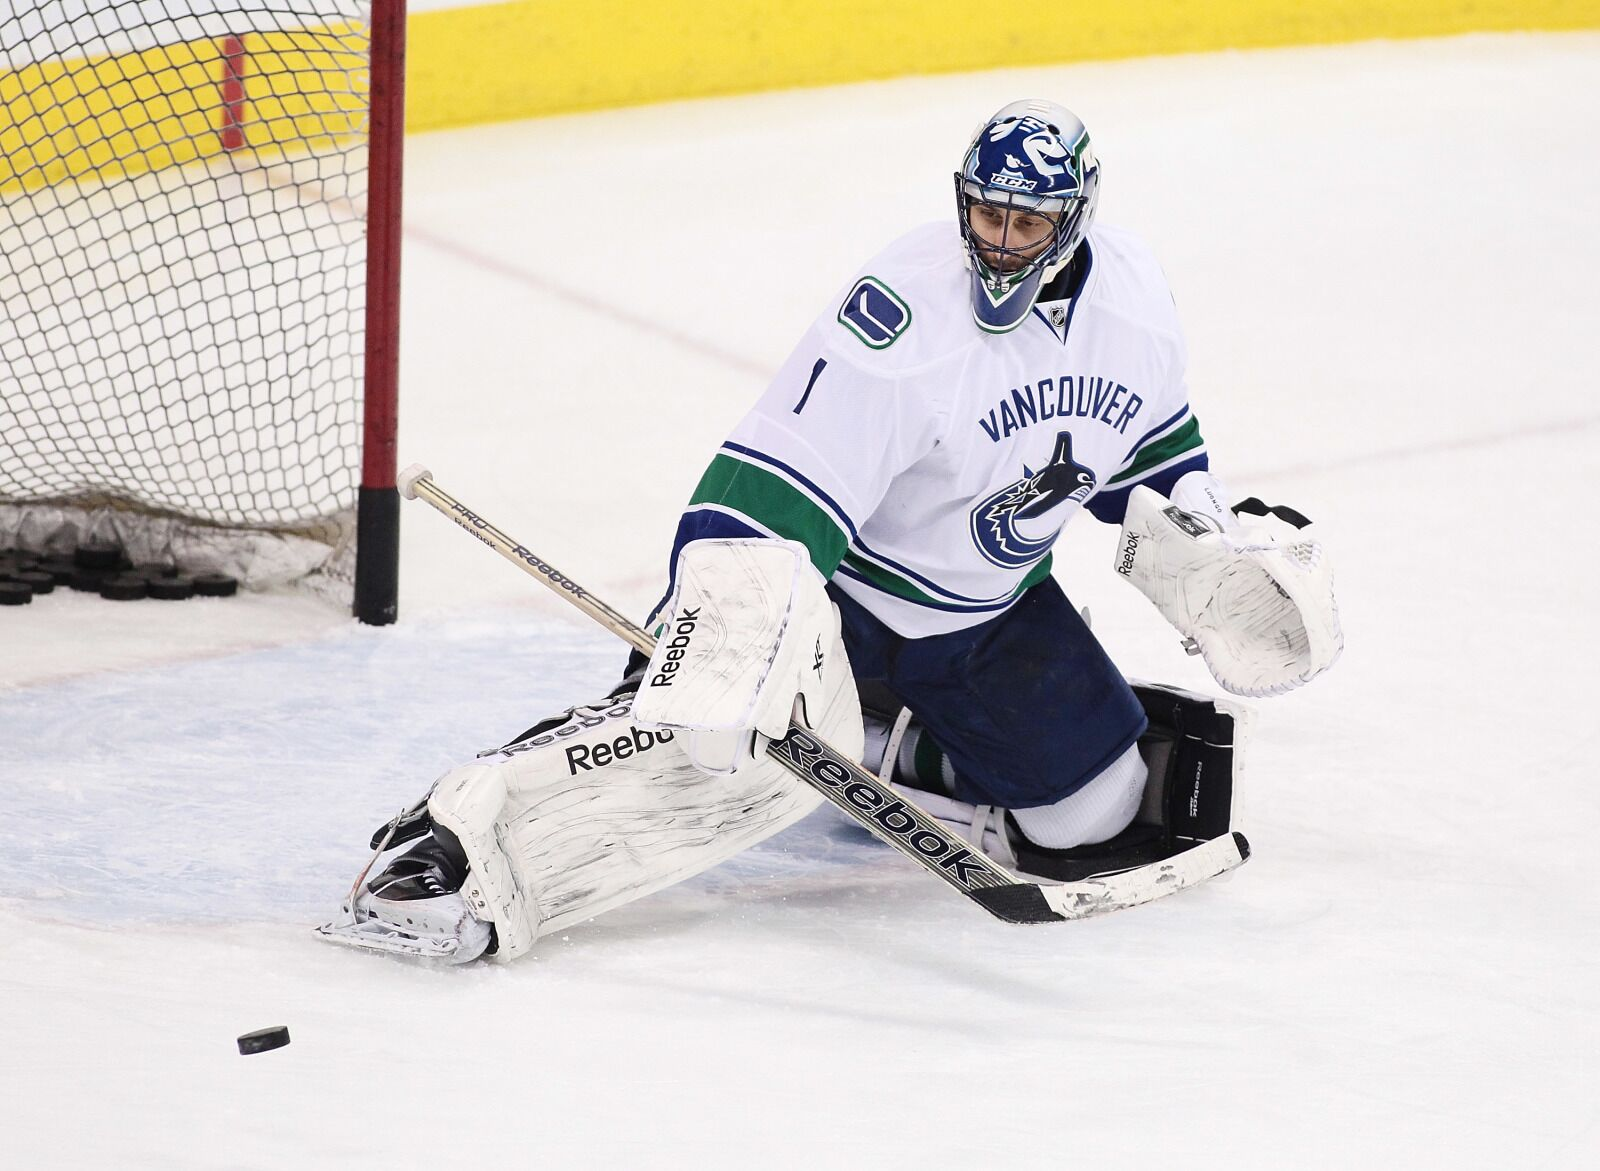 Vancouver Canucks roundtable: Should they retire Roberto Luongo's number?